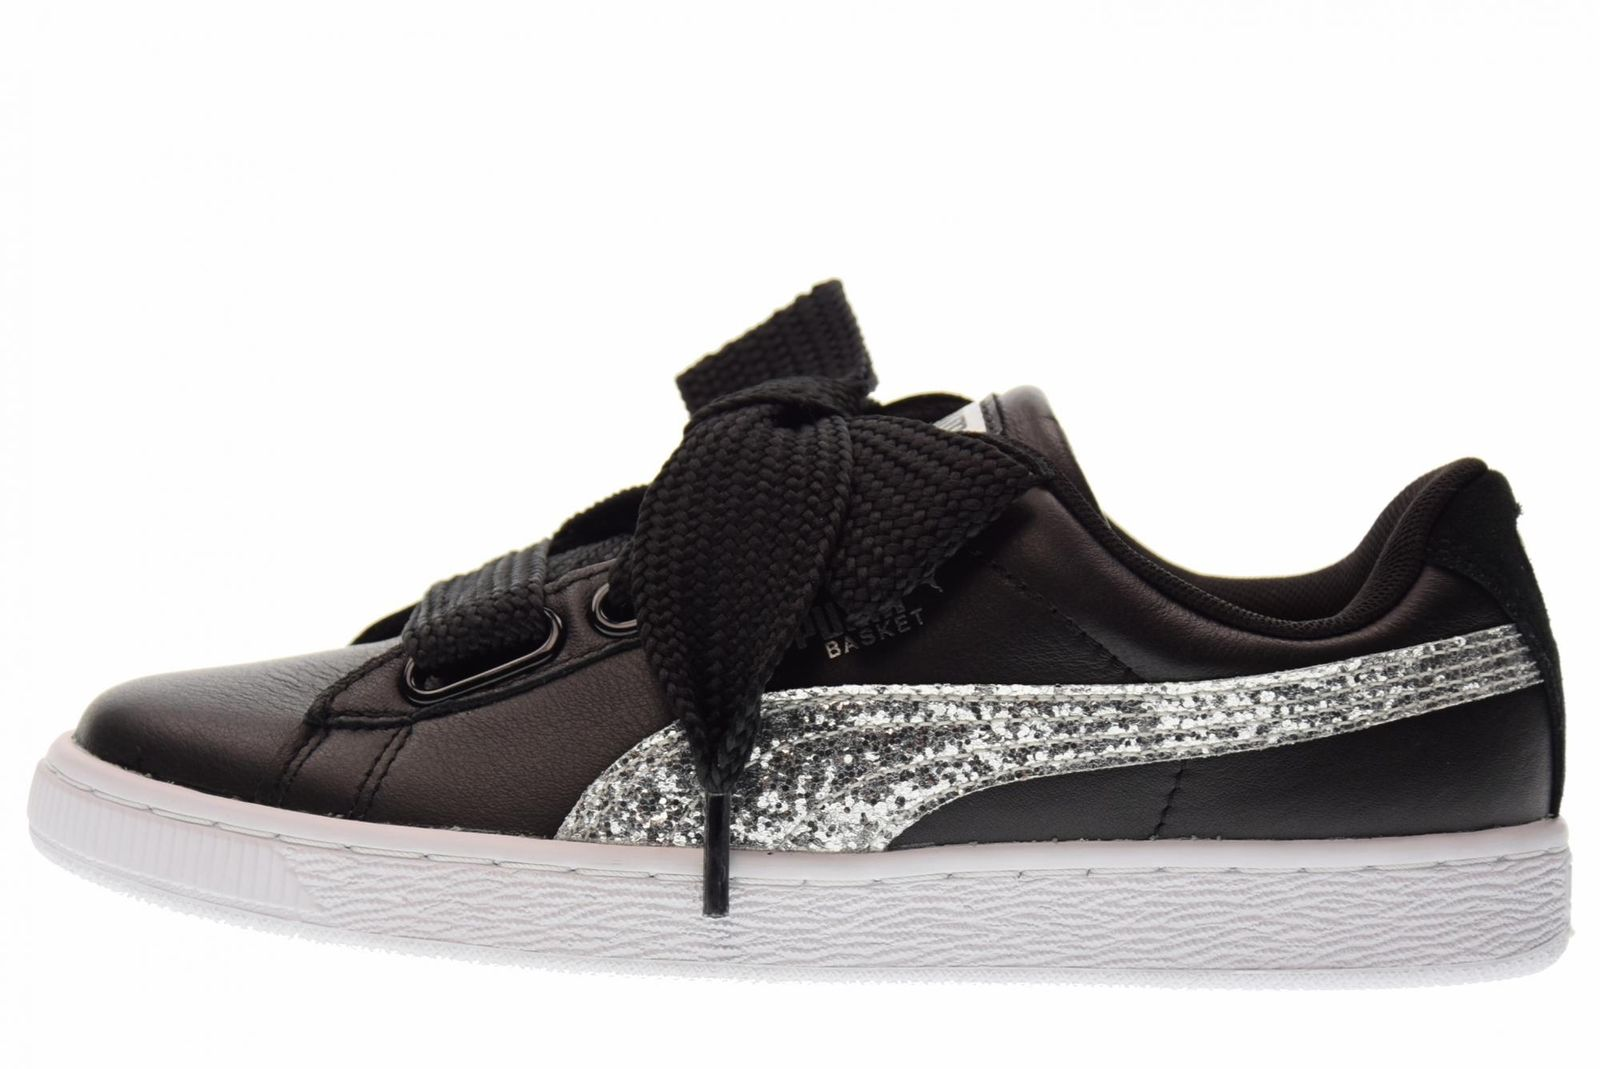 Puma Puma Puma 364078 03 Basket Heart Glitter Black Silver Women's Athletic Sneaker d6e9ff